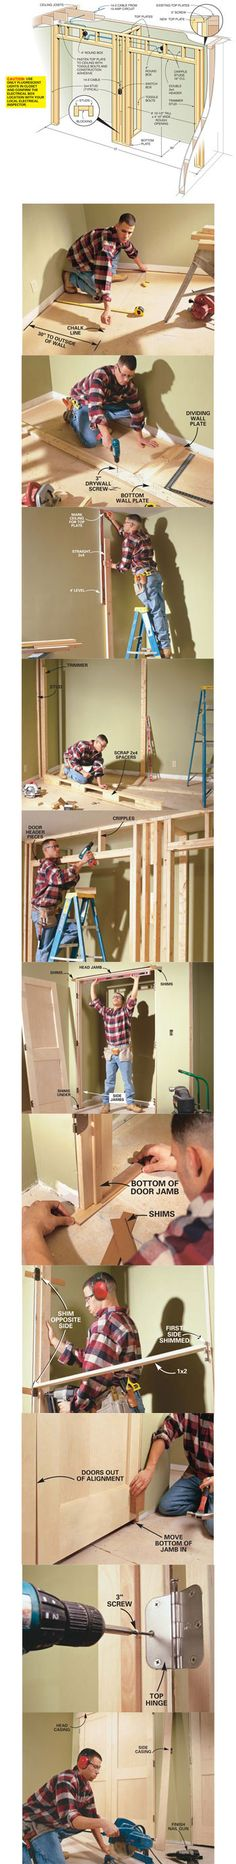 Need more closet space? You gain tons of storage space by stealing a few feet from a room and building a new closet, complete with double doors.